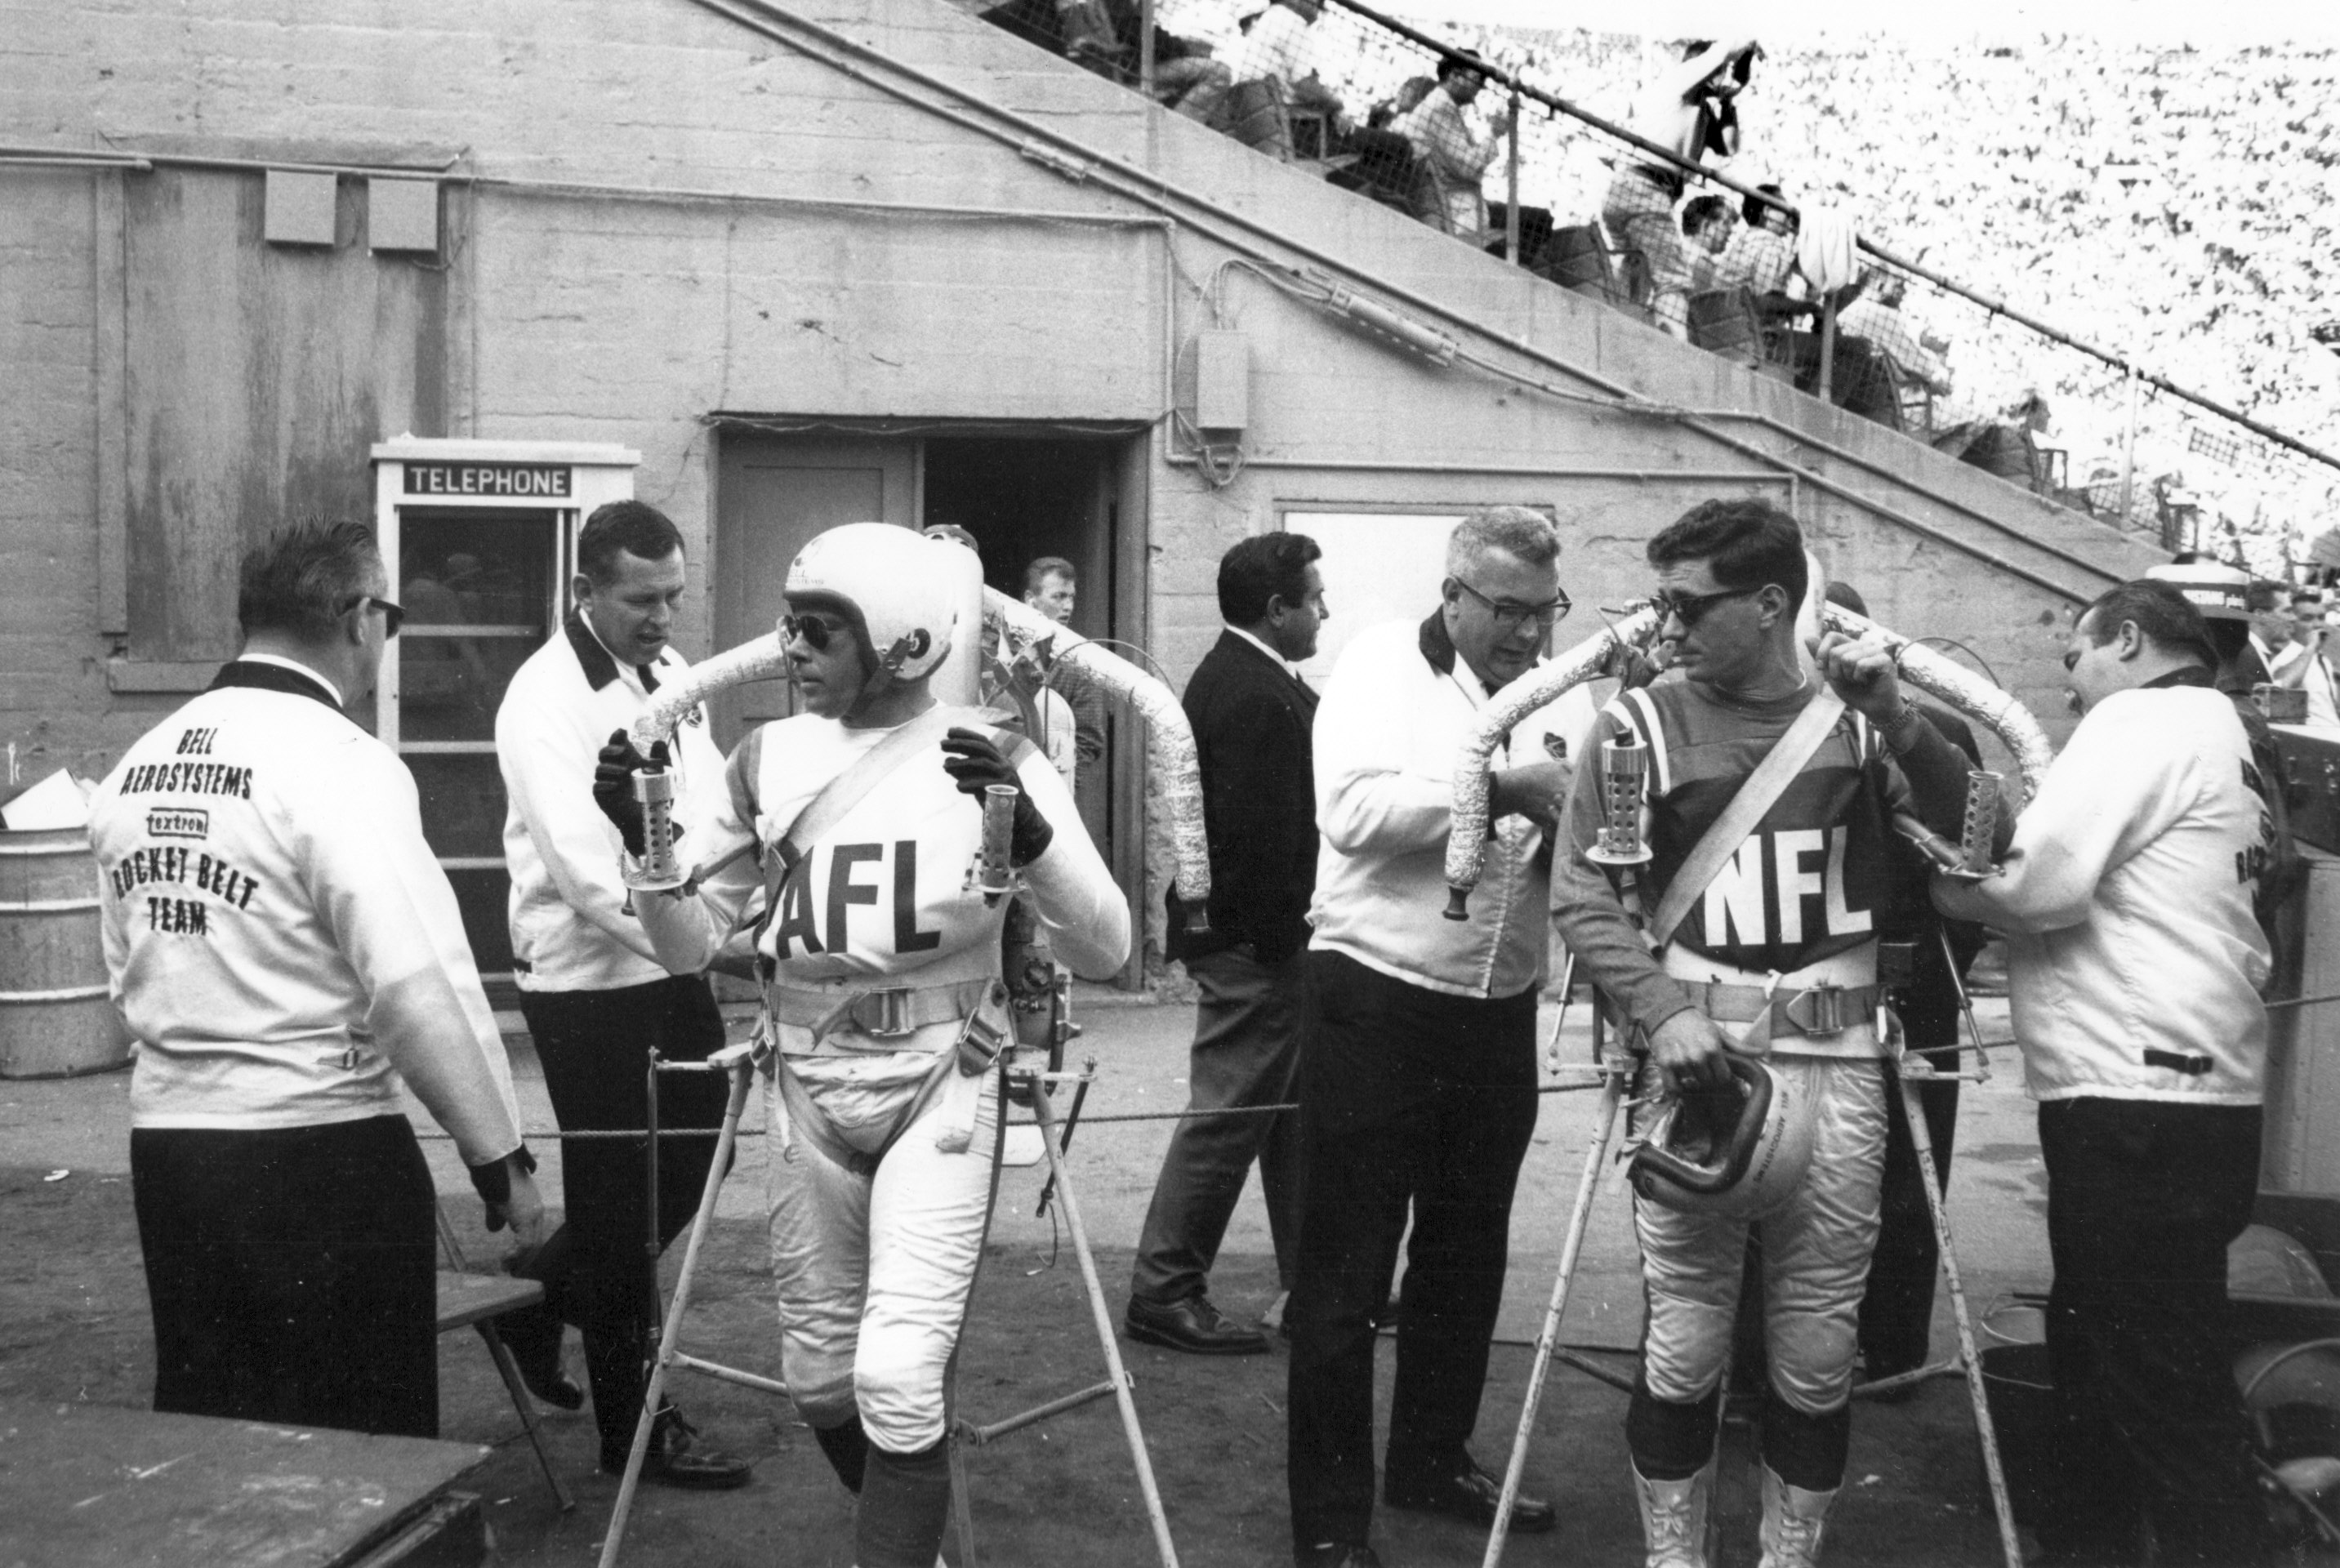 William Suitor of Youngstown, right, with Robert Courter, left, flew rocket belts at the first Super Bowl in 1967. (Photo provided by William Suitor)